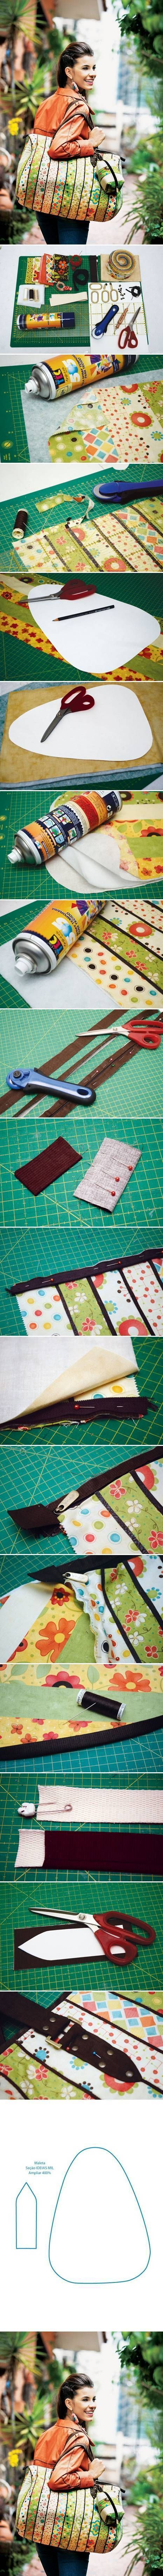 DIY Sew Travel Bag DIY Sew Travel Bag